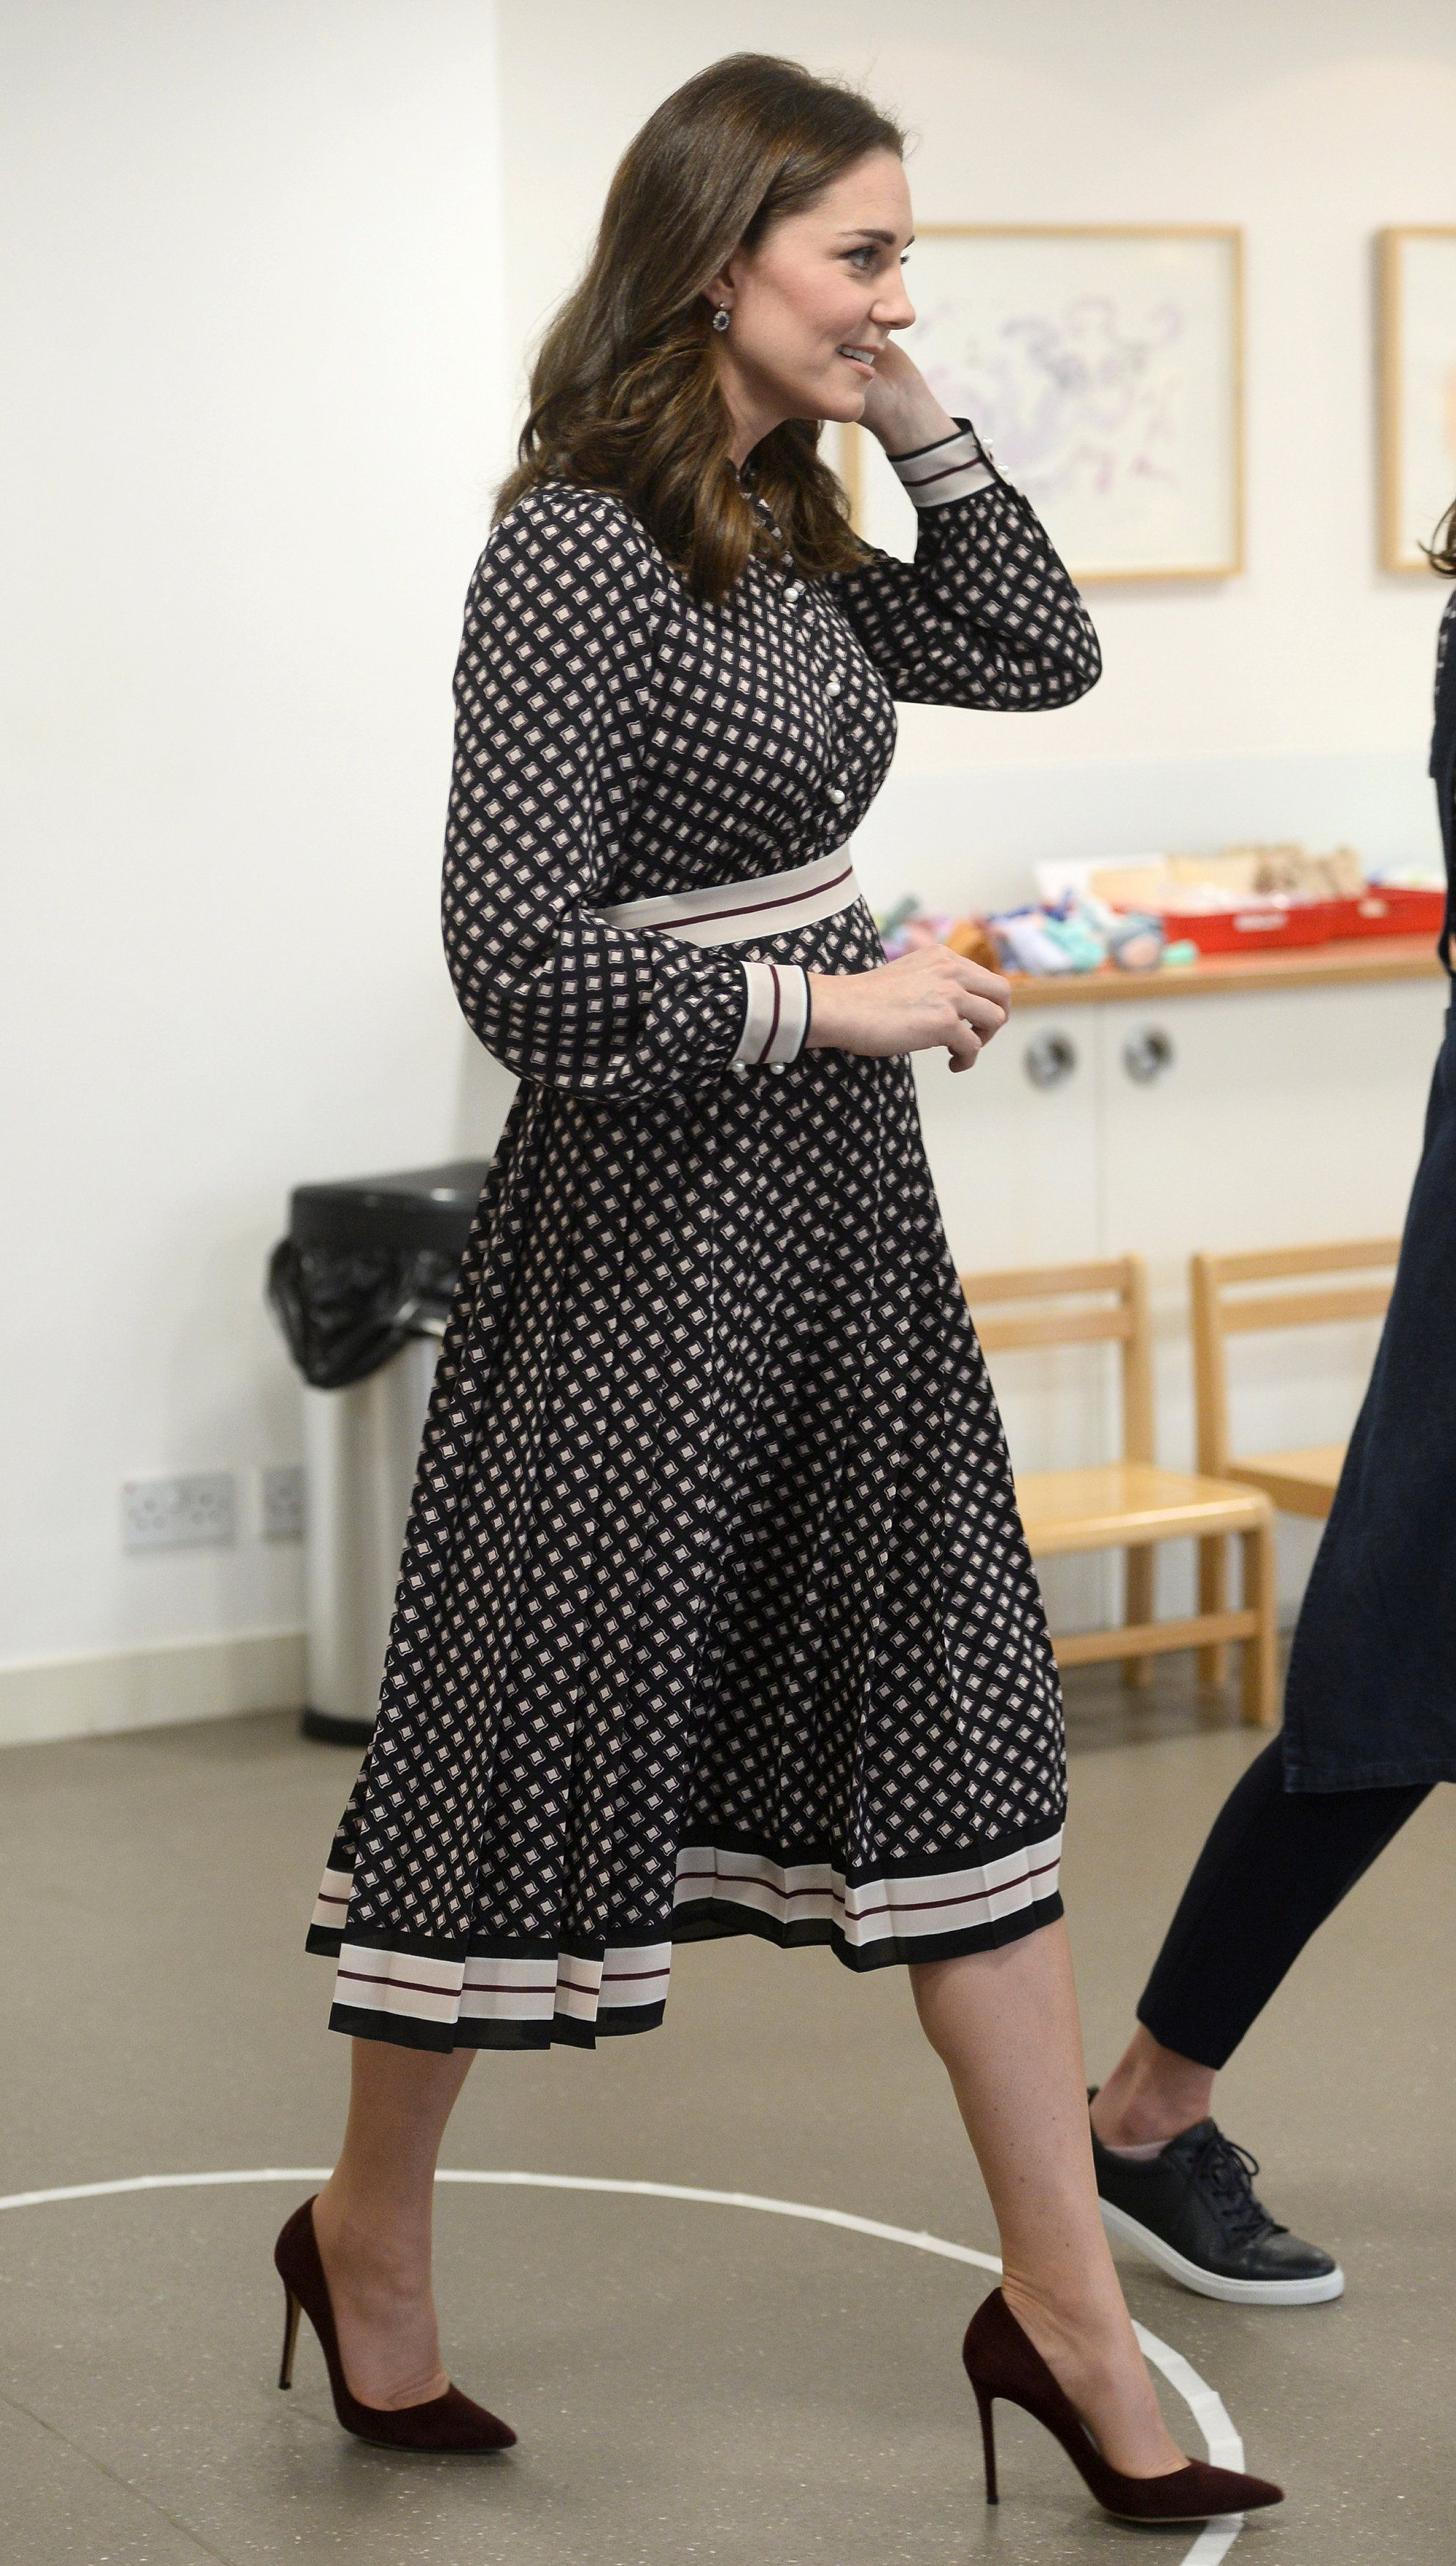 Britain's Catherine, The Duchess of Cambridge, visits the Foundling Museum in London, November 28, 2017. REUTERS Mary Turner